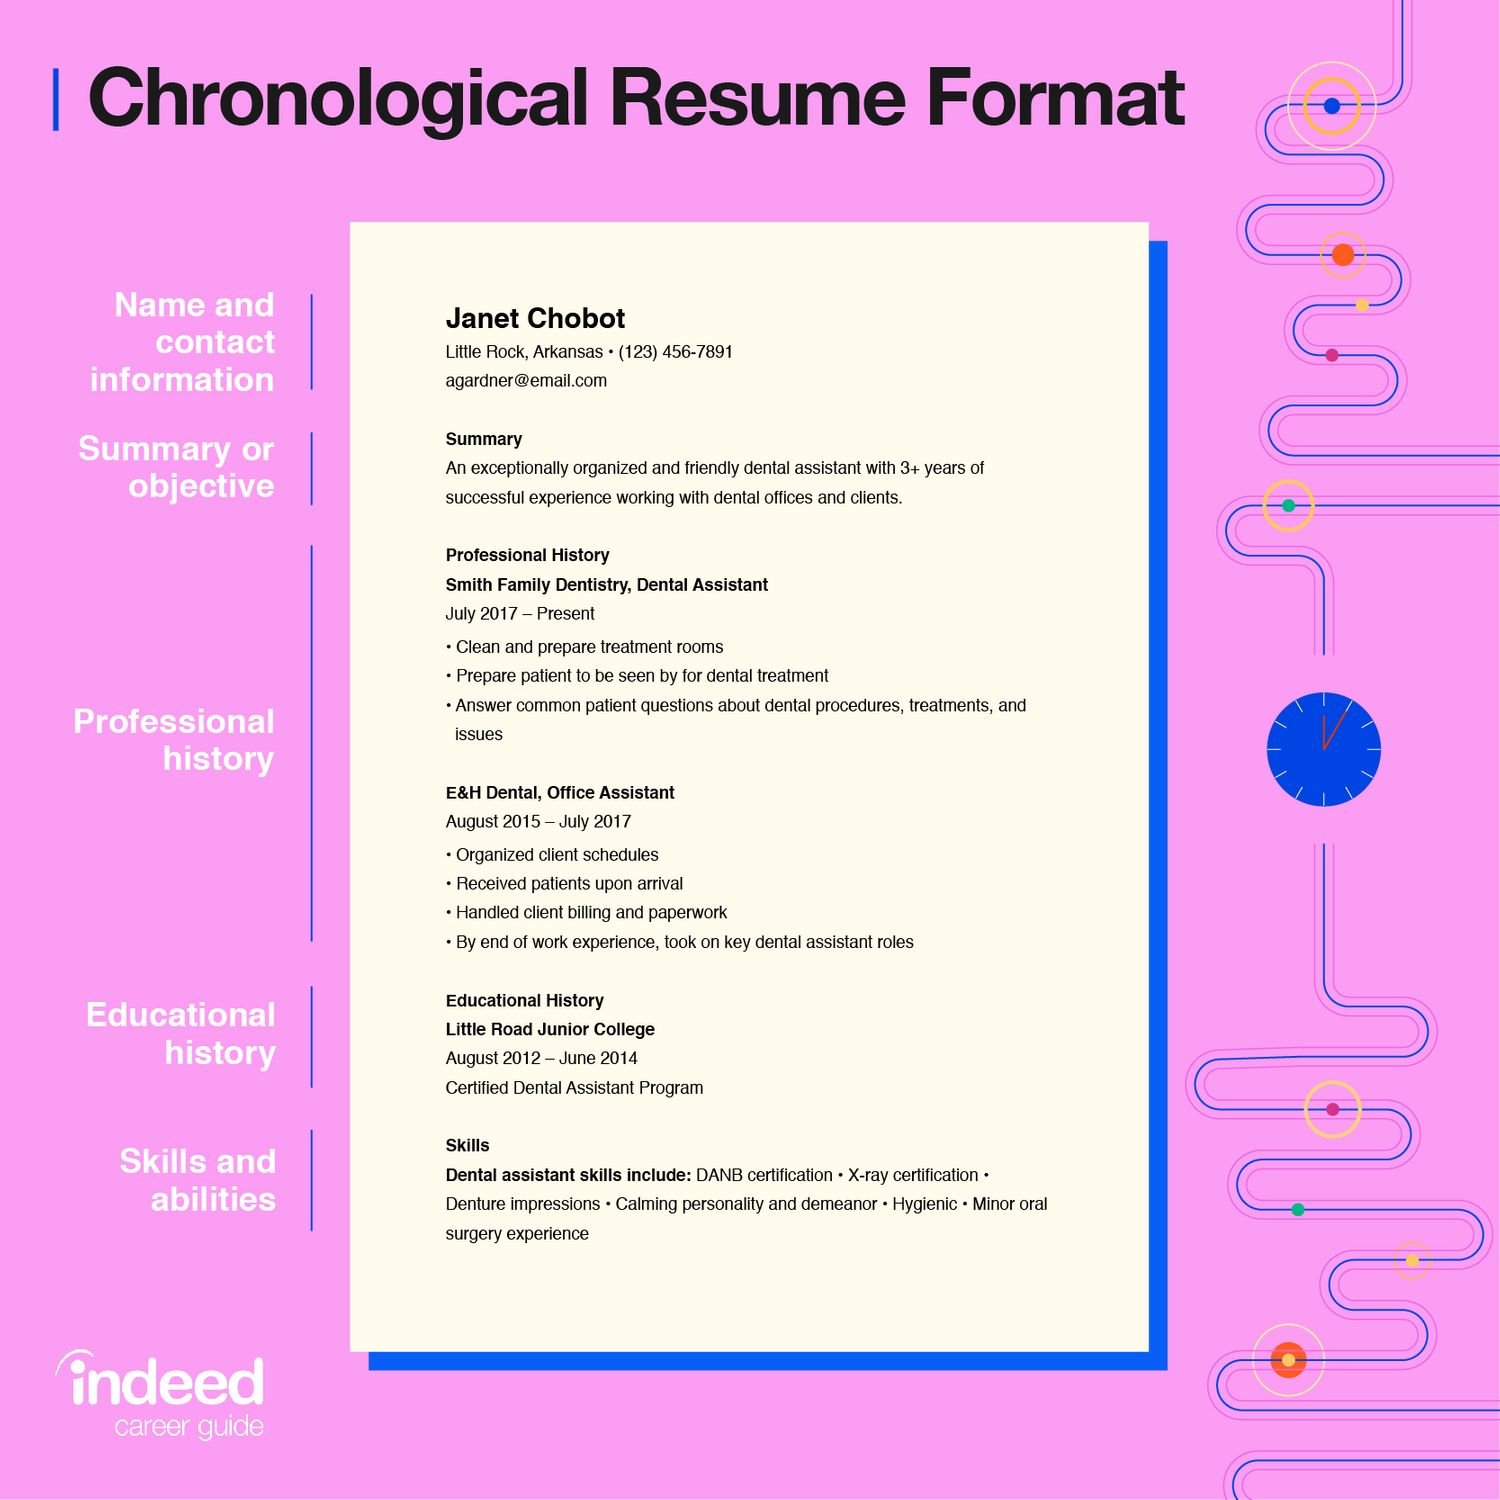 to make resume with examples indeed create for job application resized kelly services Resume Create A Resume For Job Application